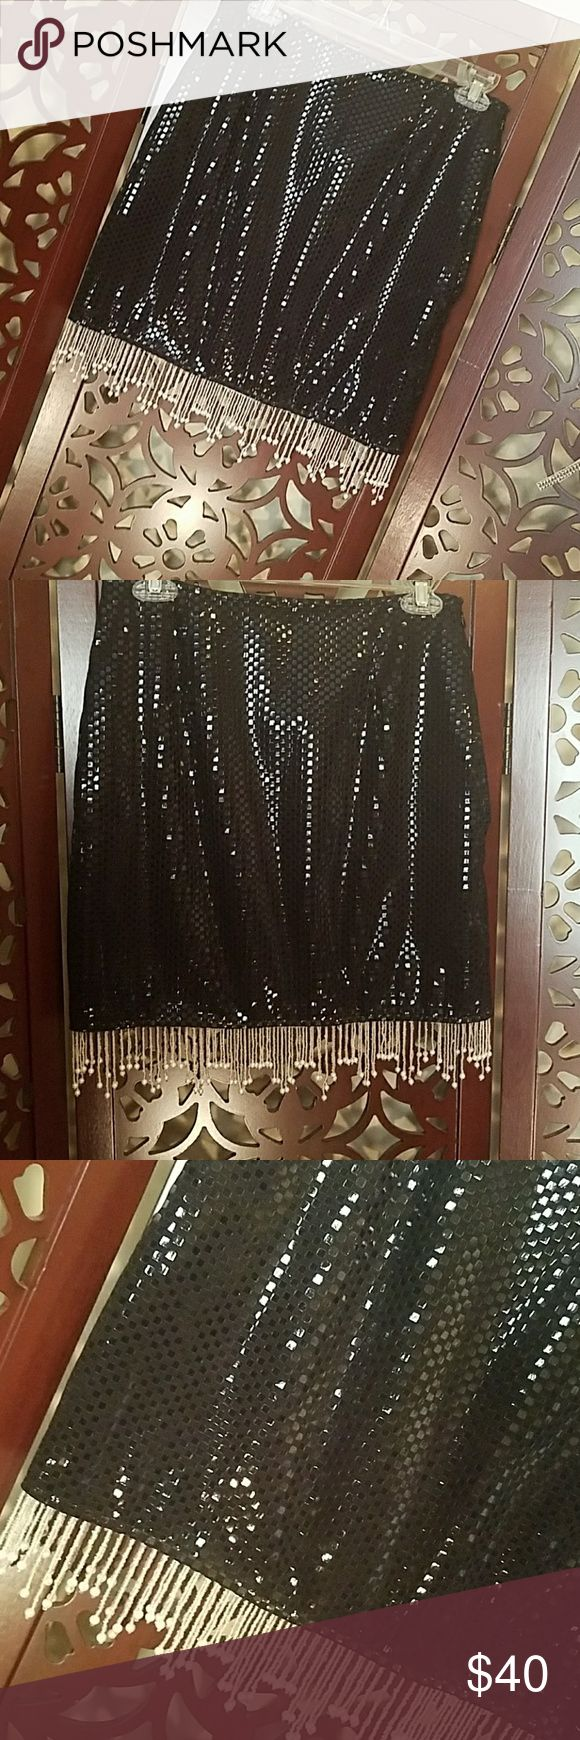 Linda Segal Embossed sequined skirt sx. 6 Linda Segal Embossed sequined skirt sx. 6, Beaded fringe,  Lining is sewn to skirt.  This skirt would be great for my followers who sing on stage or just to out. In excellent preloved condition Linda Segal  Skirts Mini